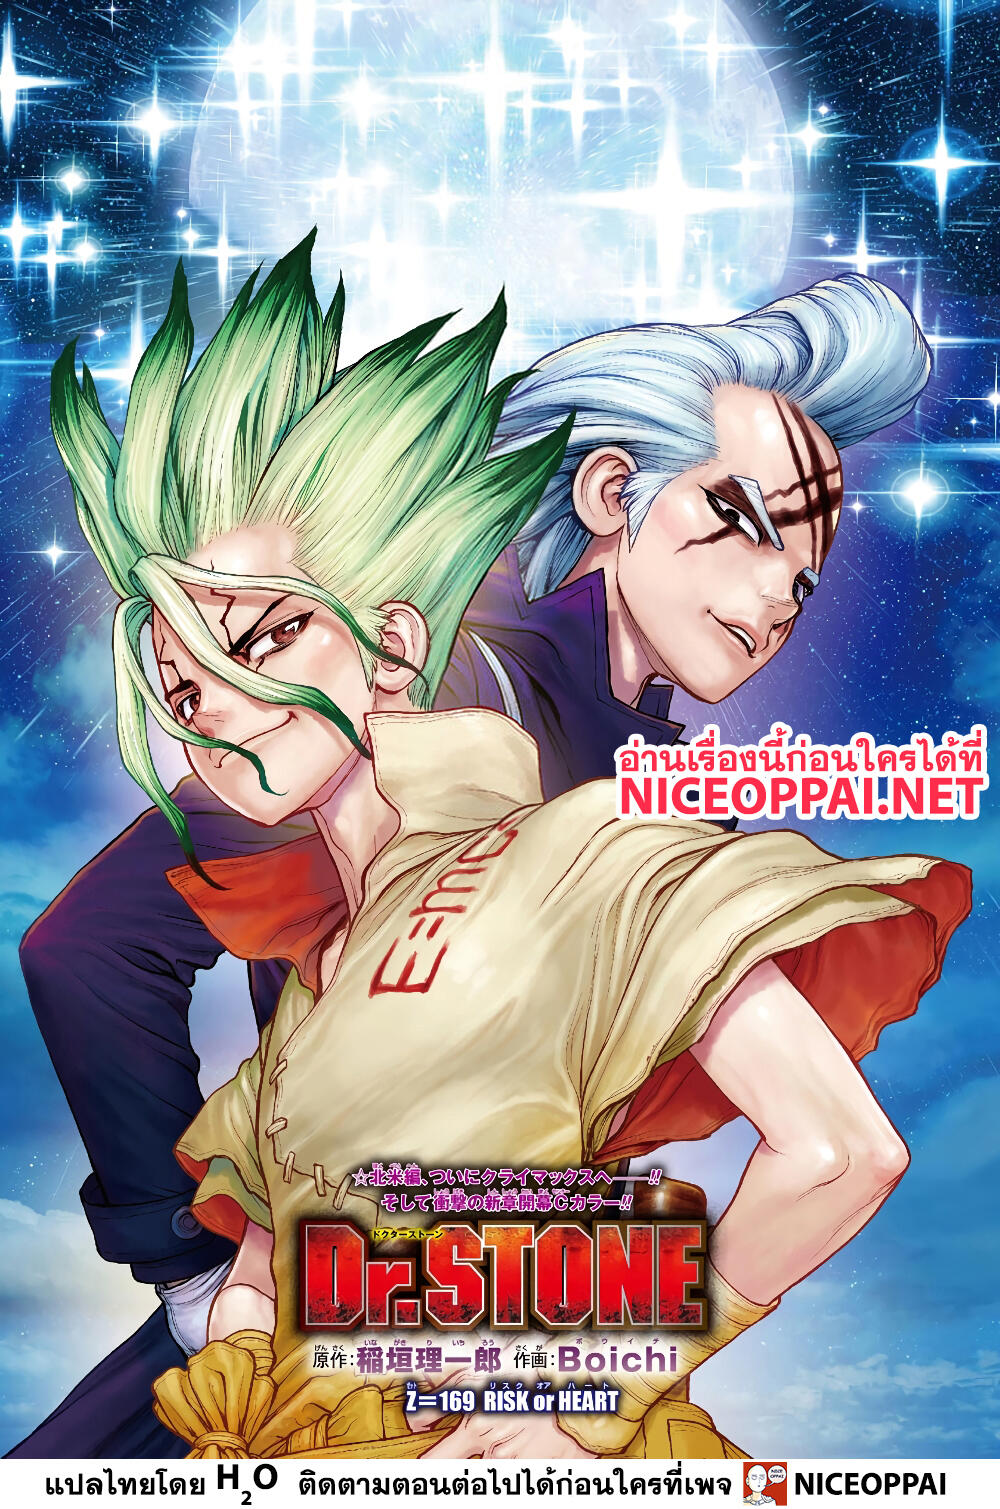 Dr.Stone ตอนที่ 169 RISK or HEART